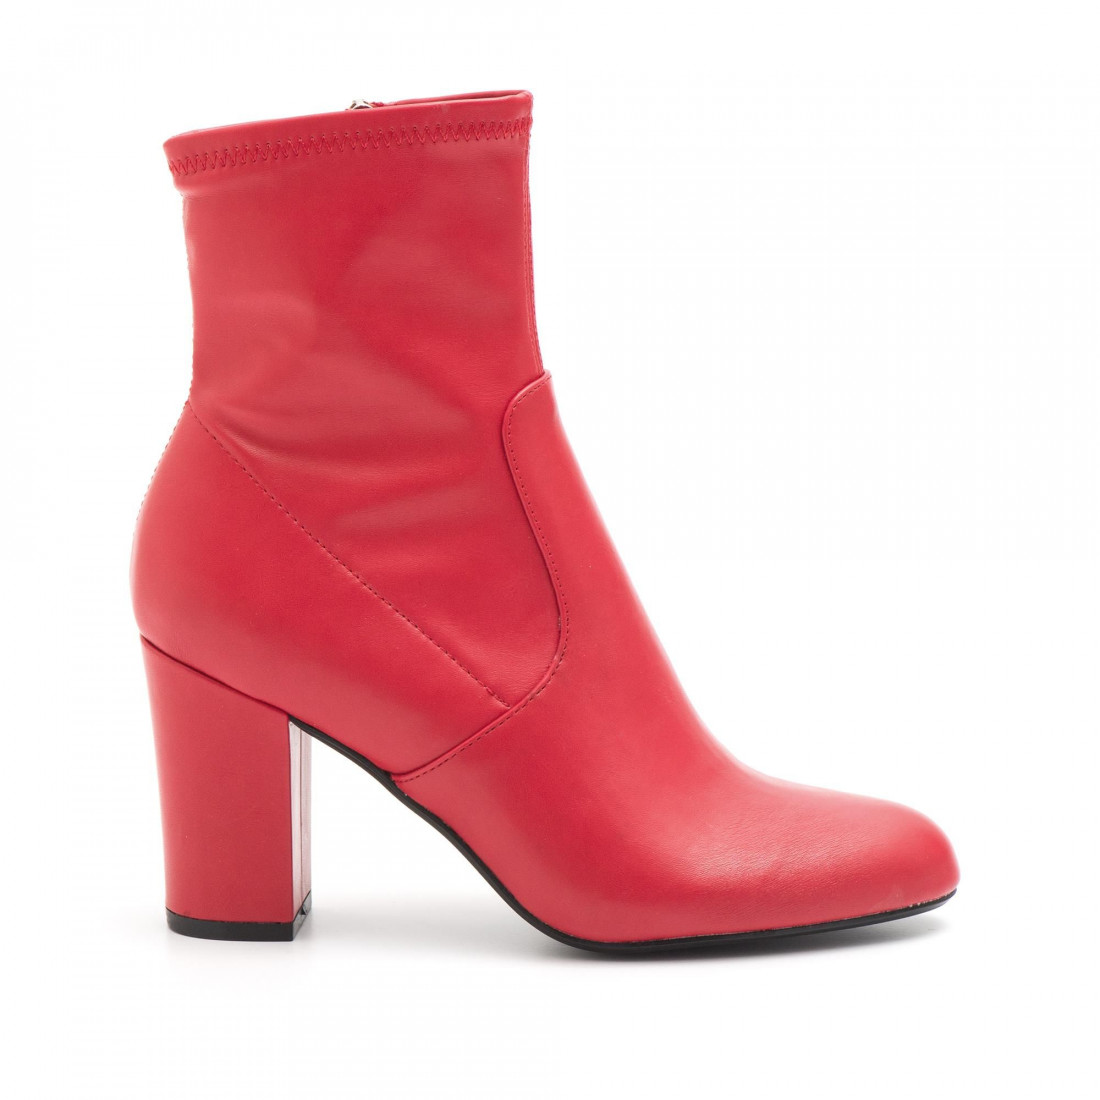 de79147e9790 booties woman steve madden smsactualred 3545